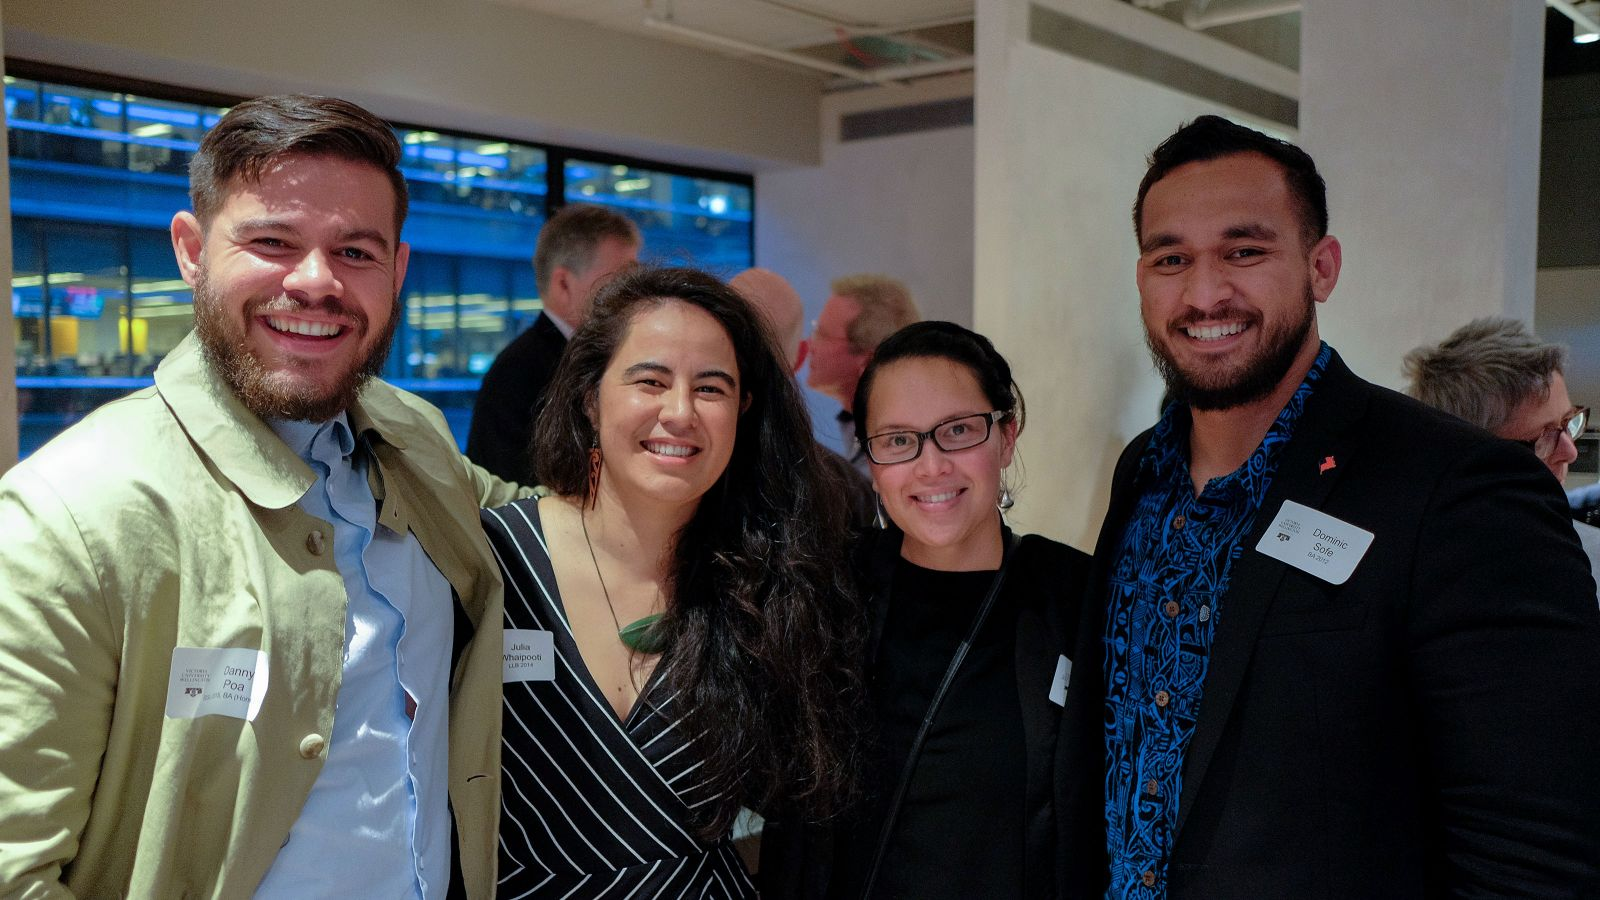 Four alumni—two men and two women—smile for the camera at an alumni event.